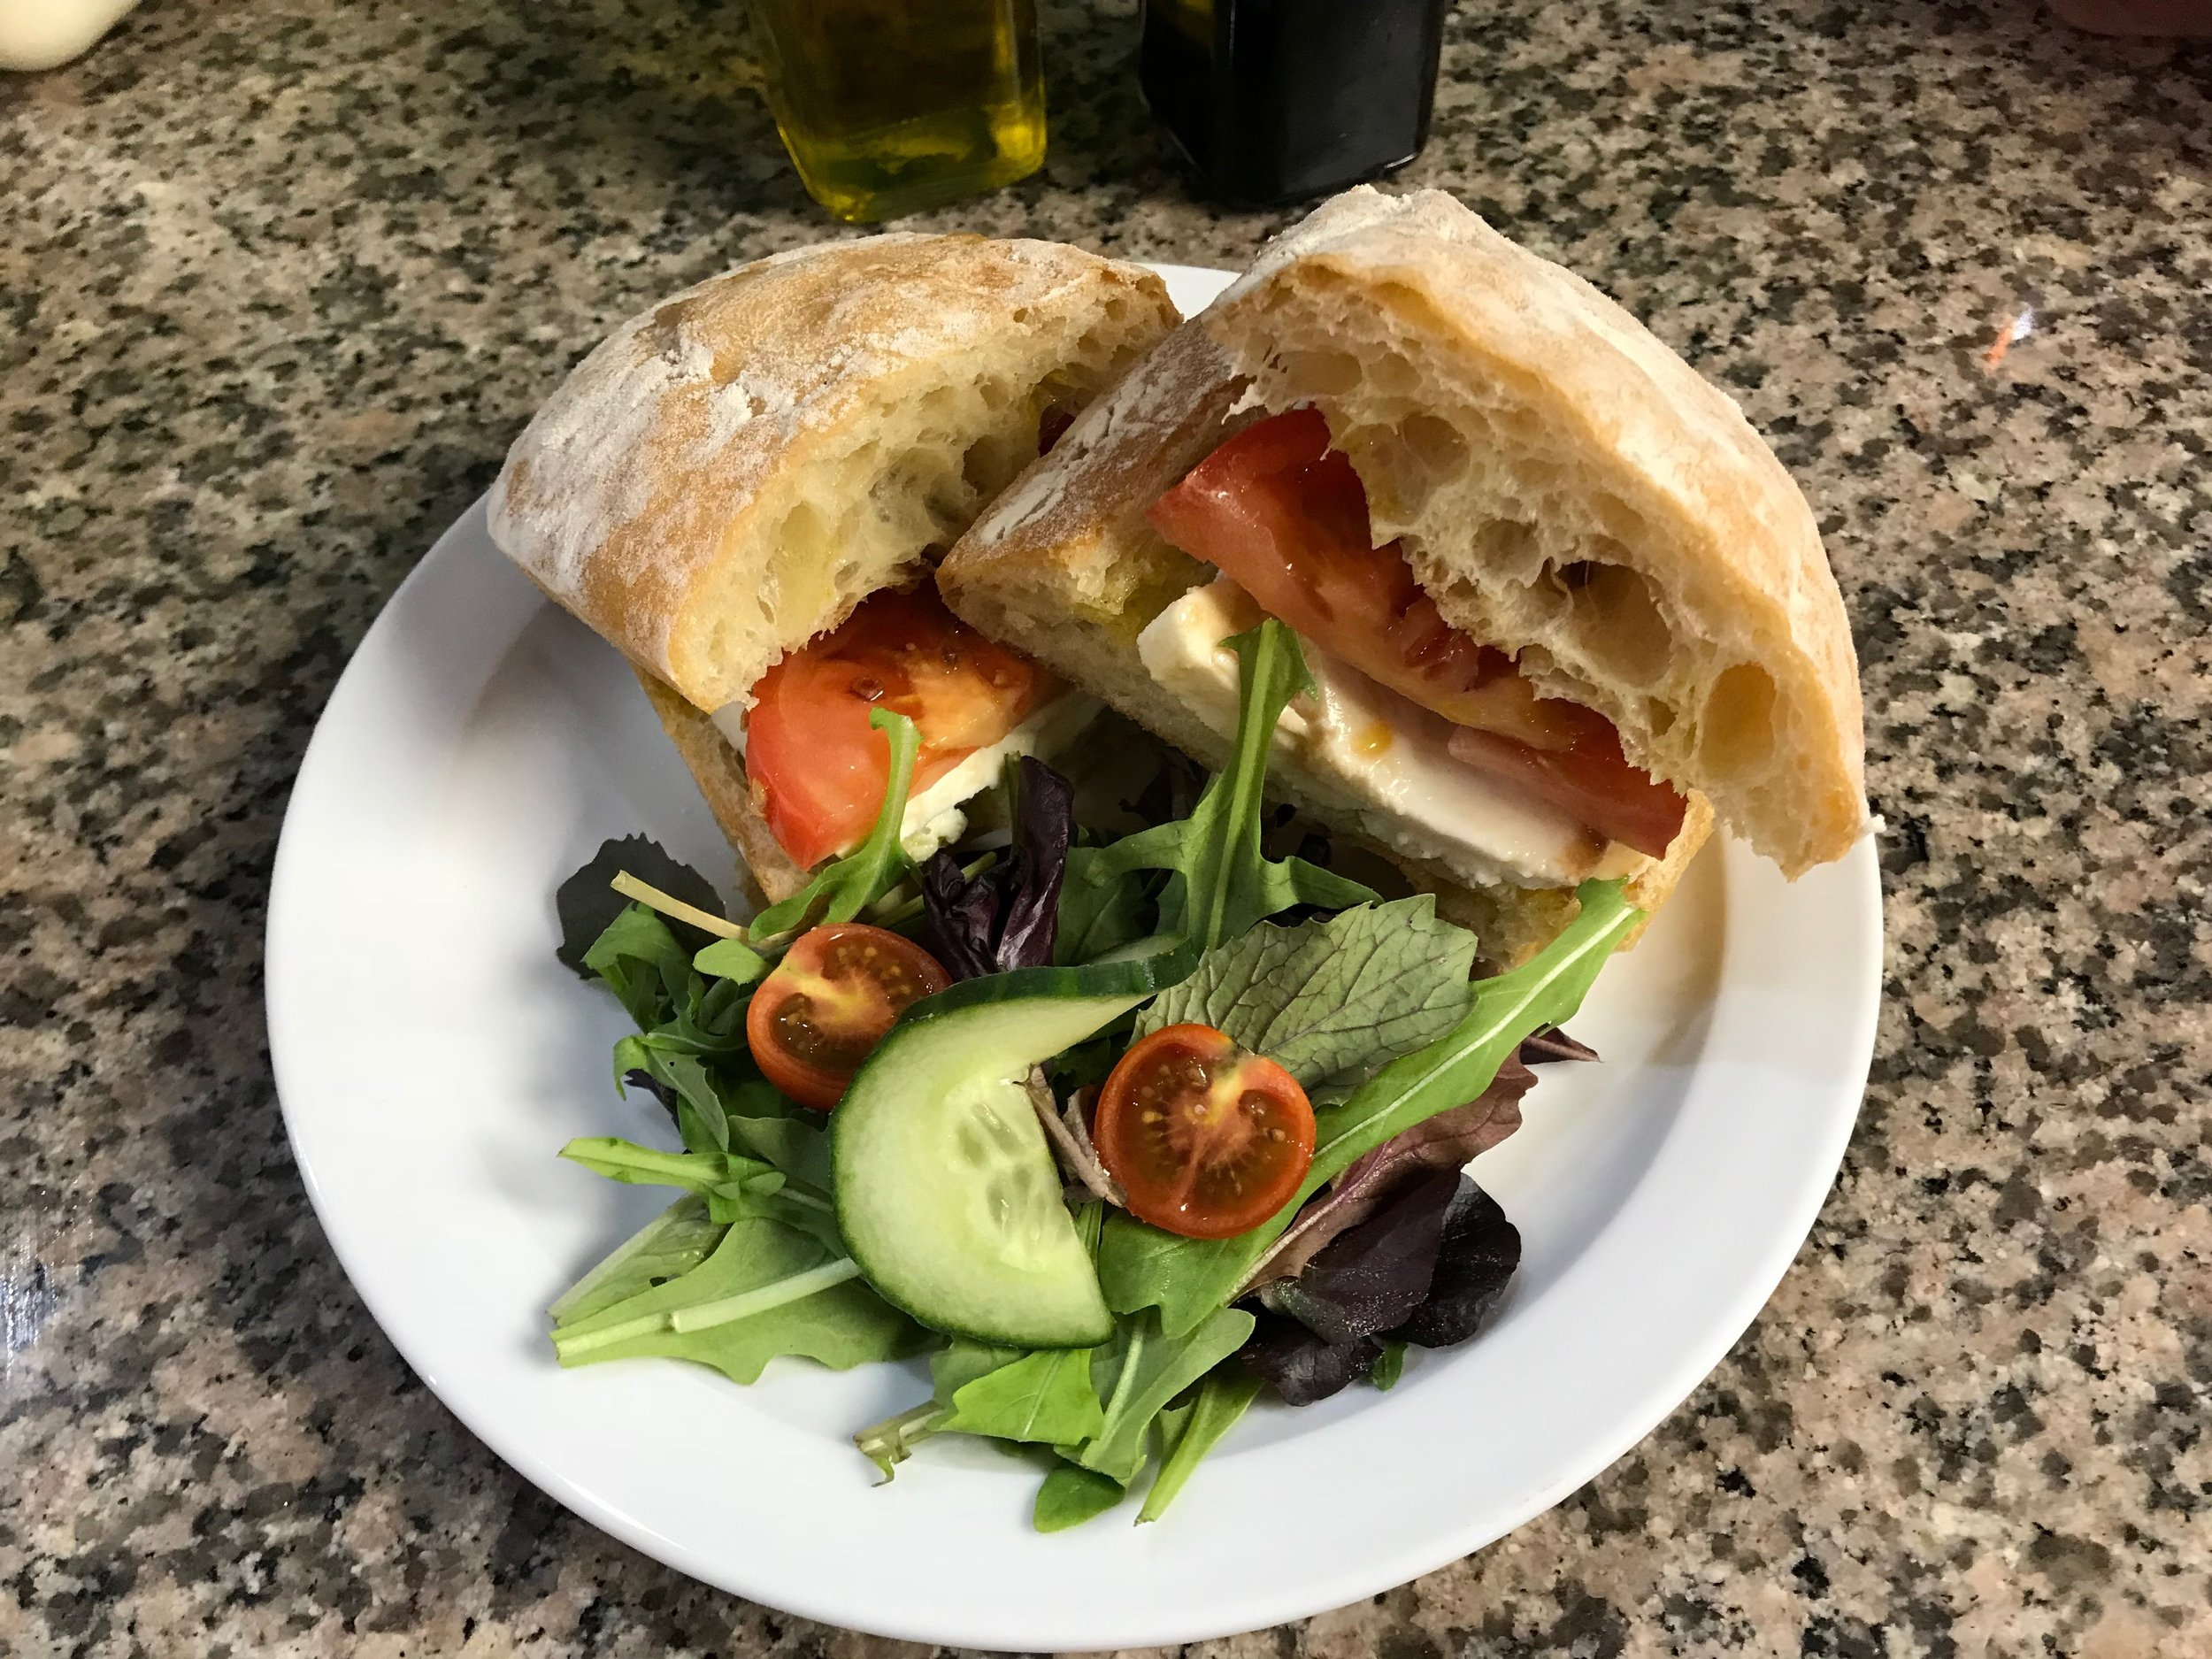 Our Vegan Caprese Sandwich uses purely organic ingredients.